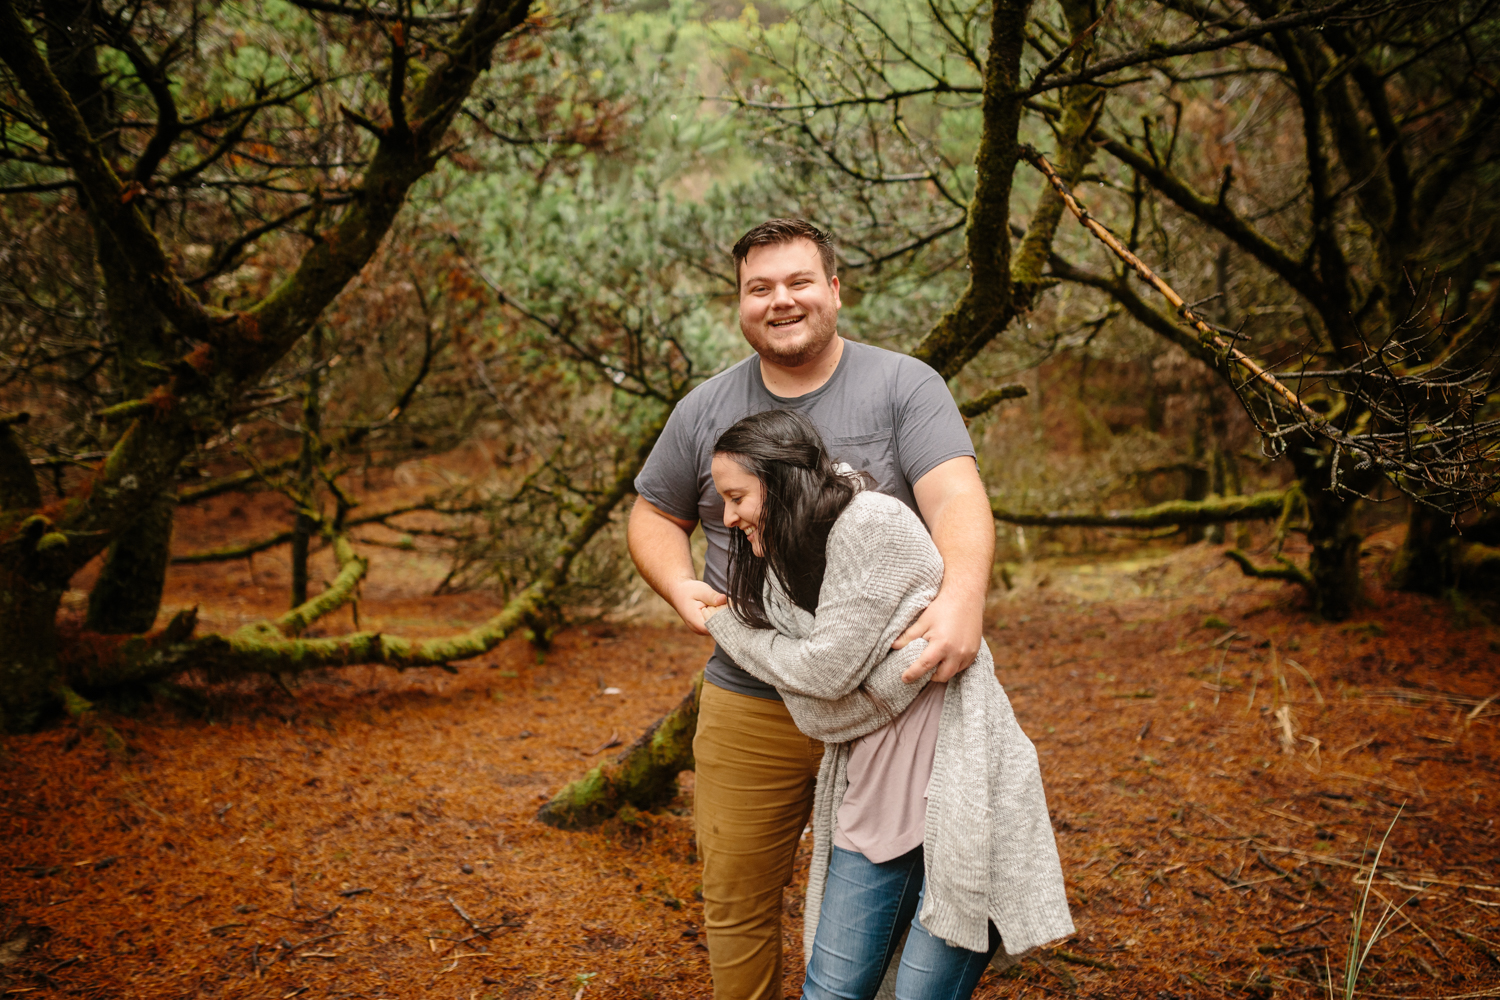 A happy young couple laughing and dancing amdist the trees near